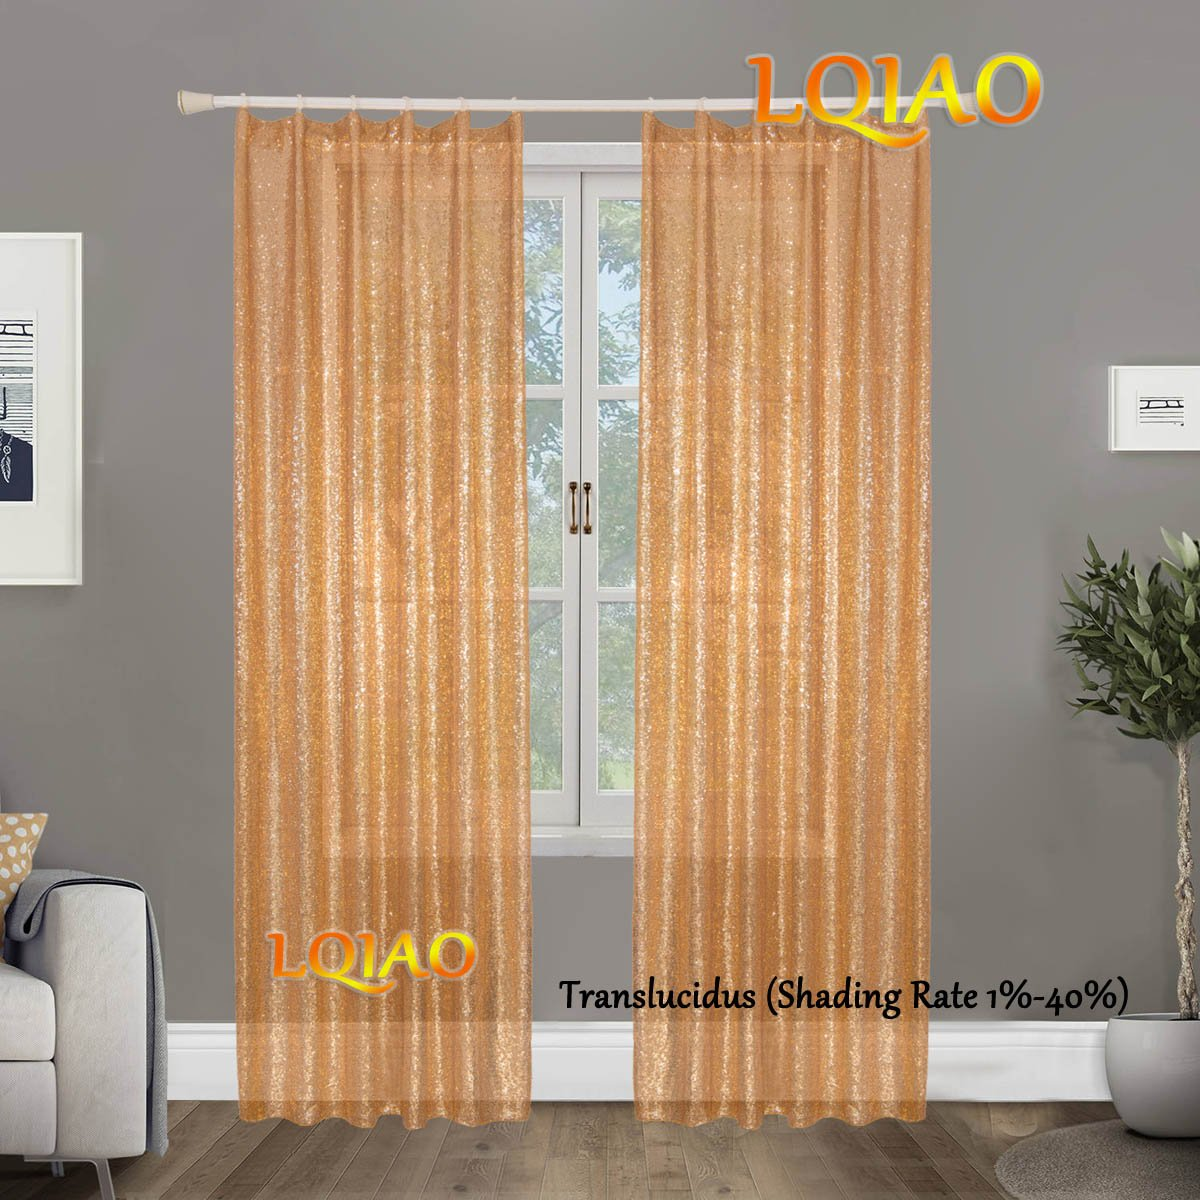 LQIAO Luxurious Metalic Gold Sequin Curtains 200x250cm Sparkly Gold Fabric Window Curtain Panel,little see through, 80x100 inches,More Colors Options Hooks Possible